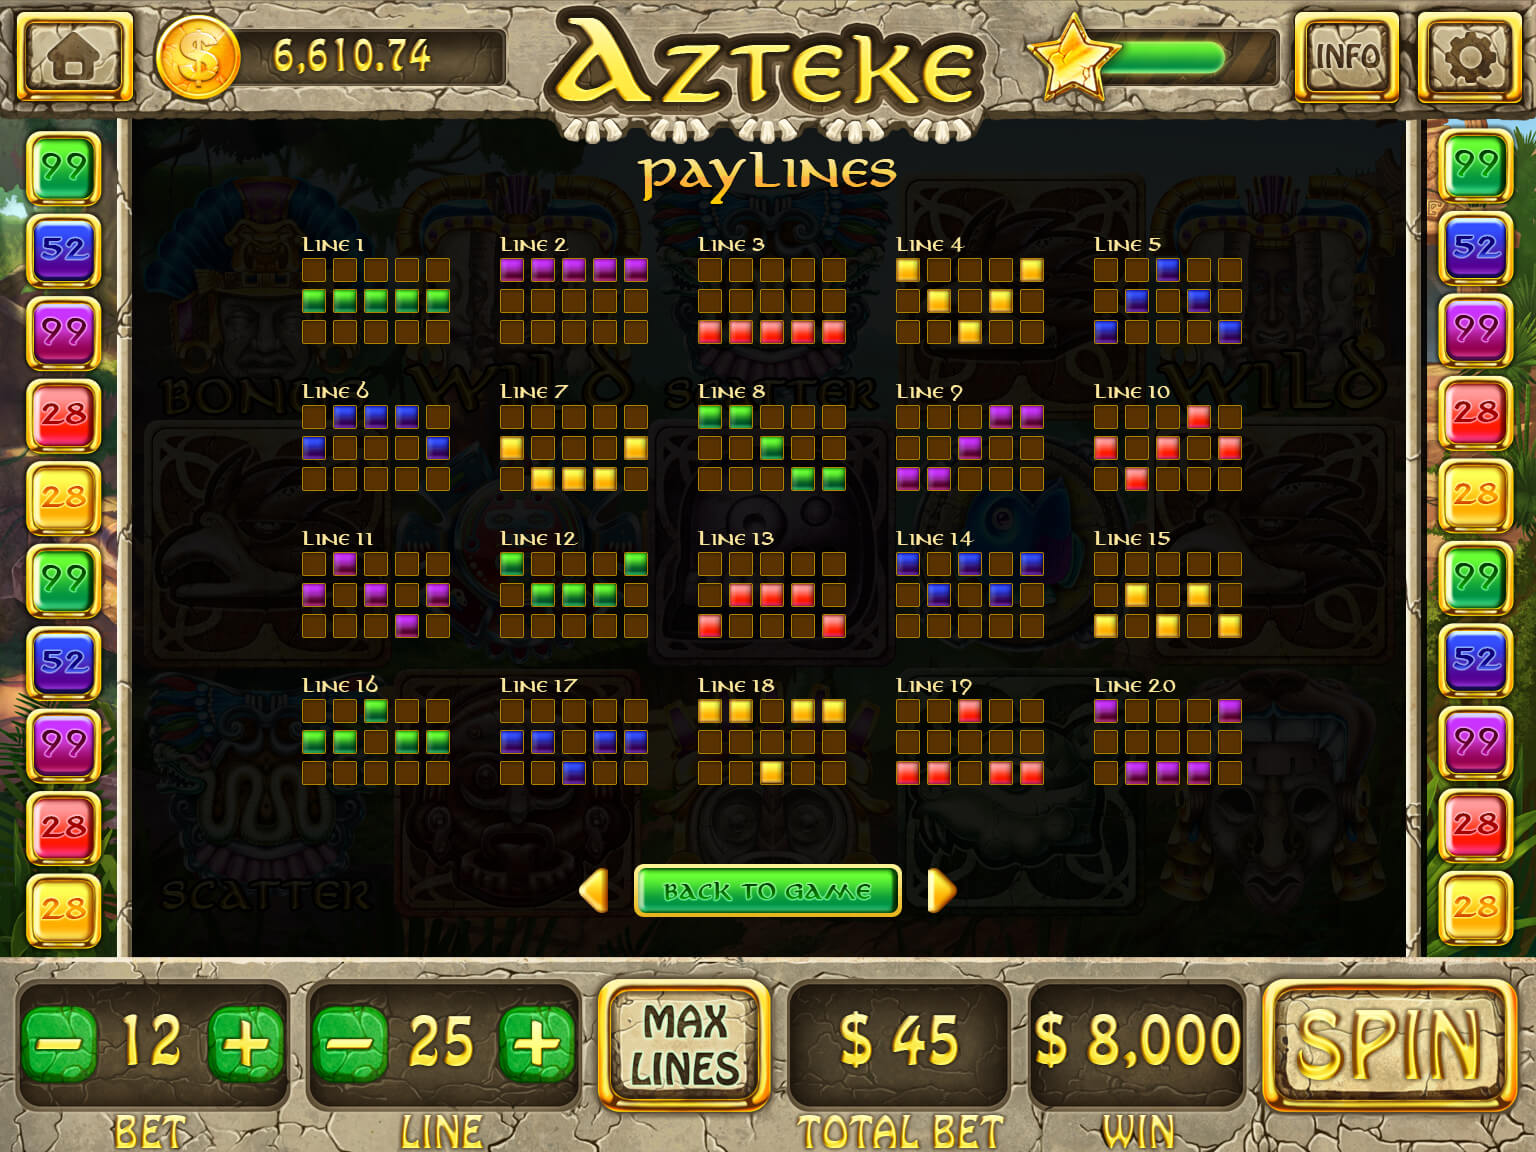 Aztek slot machine